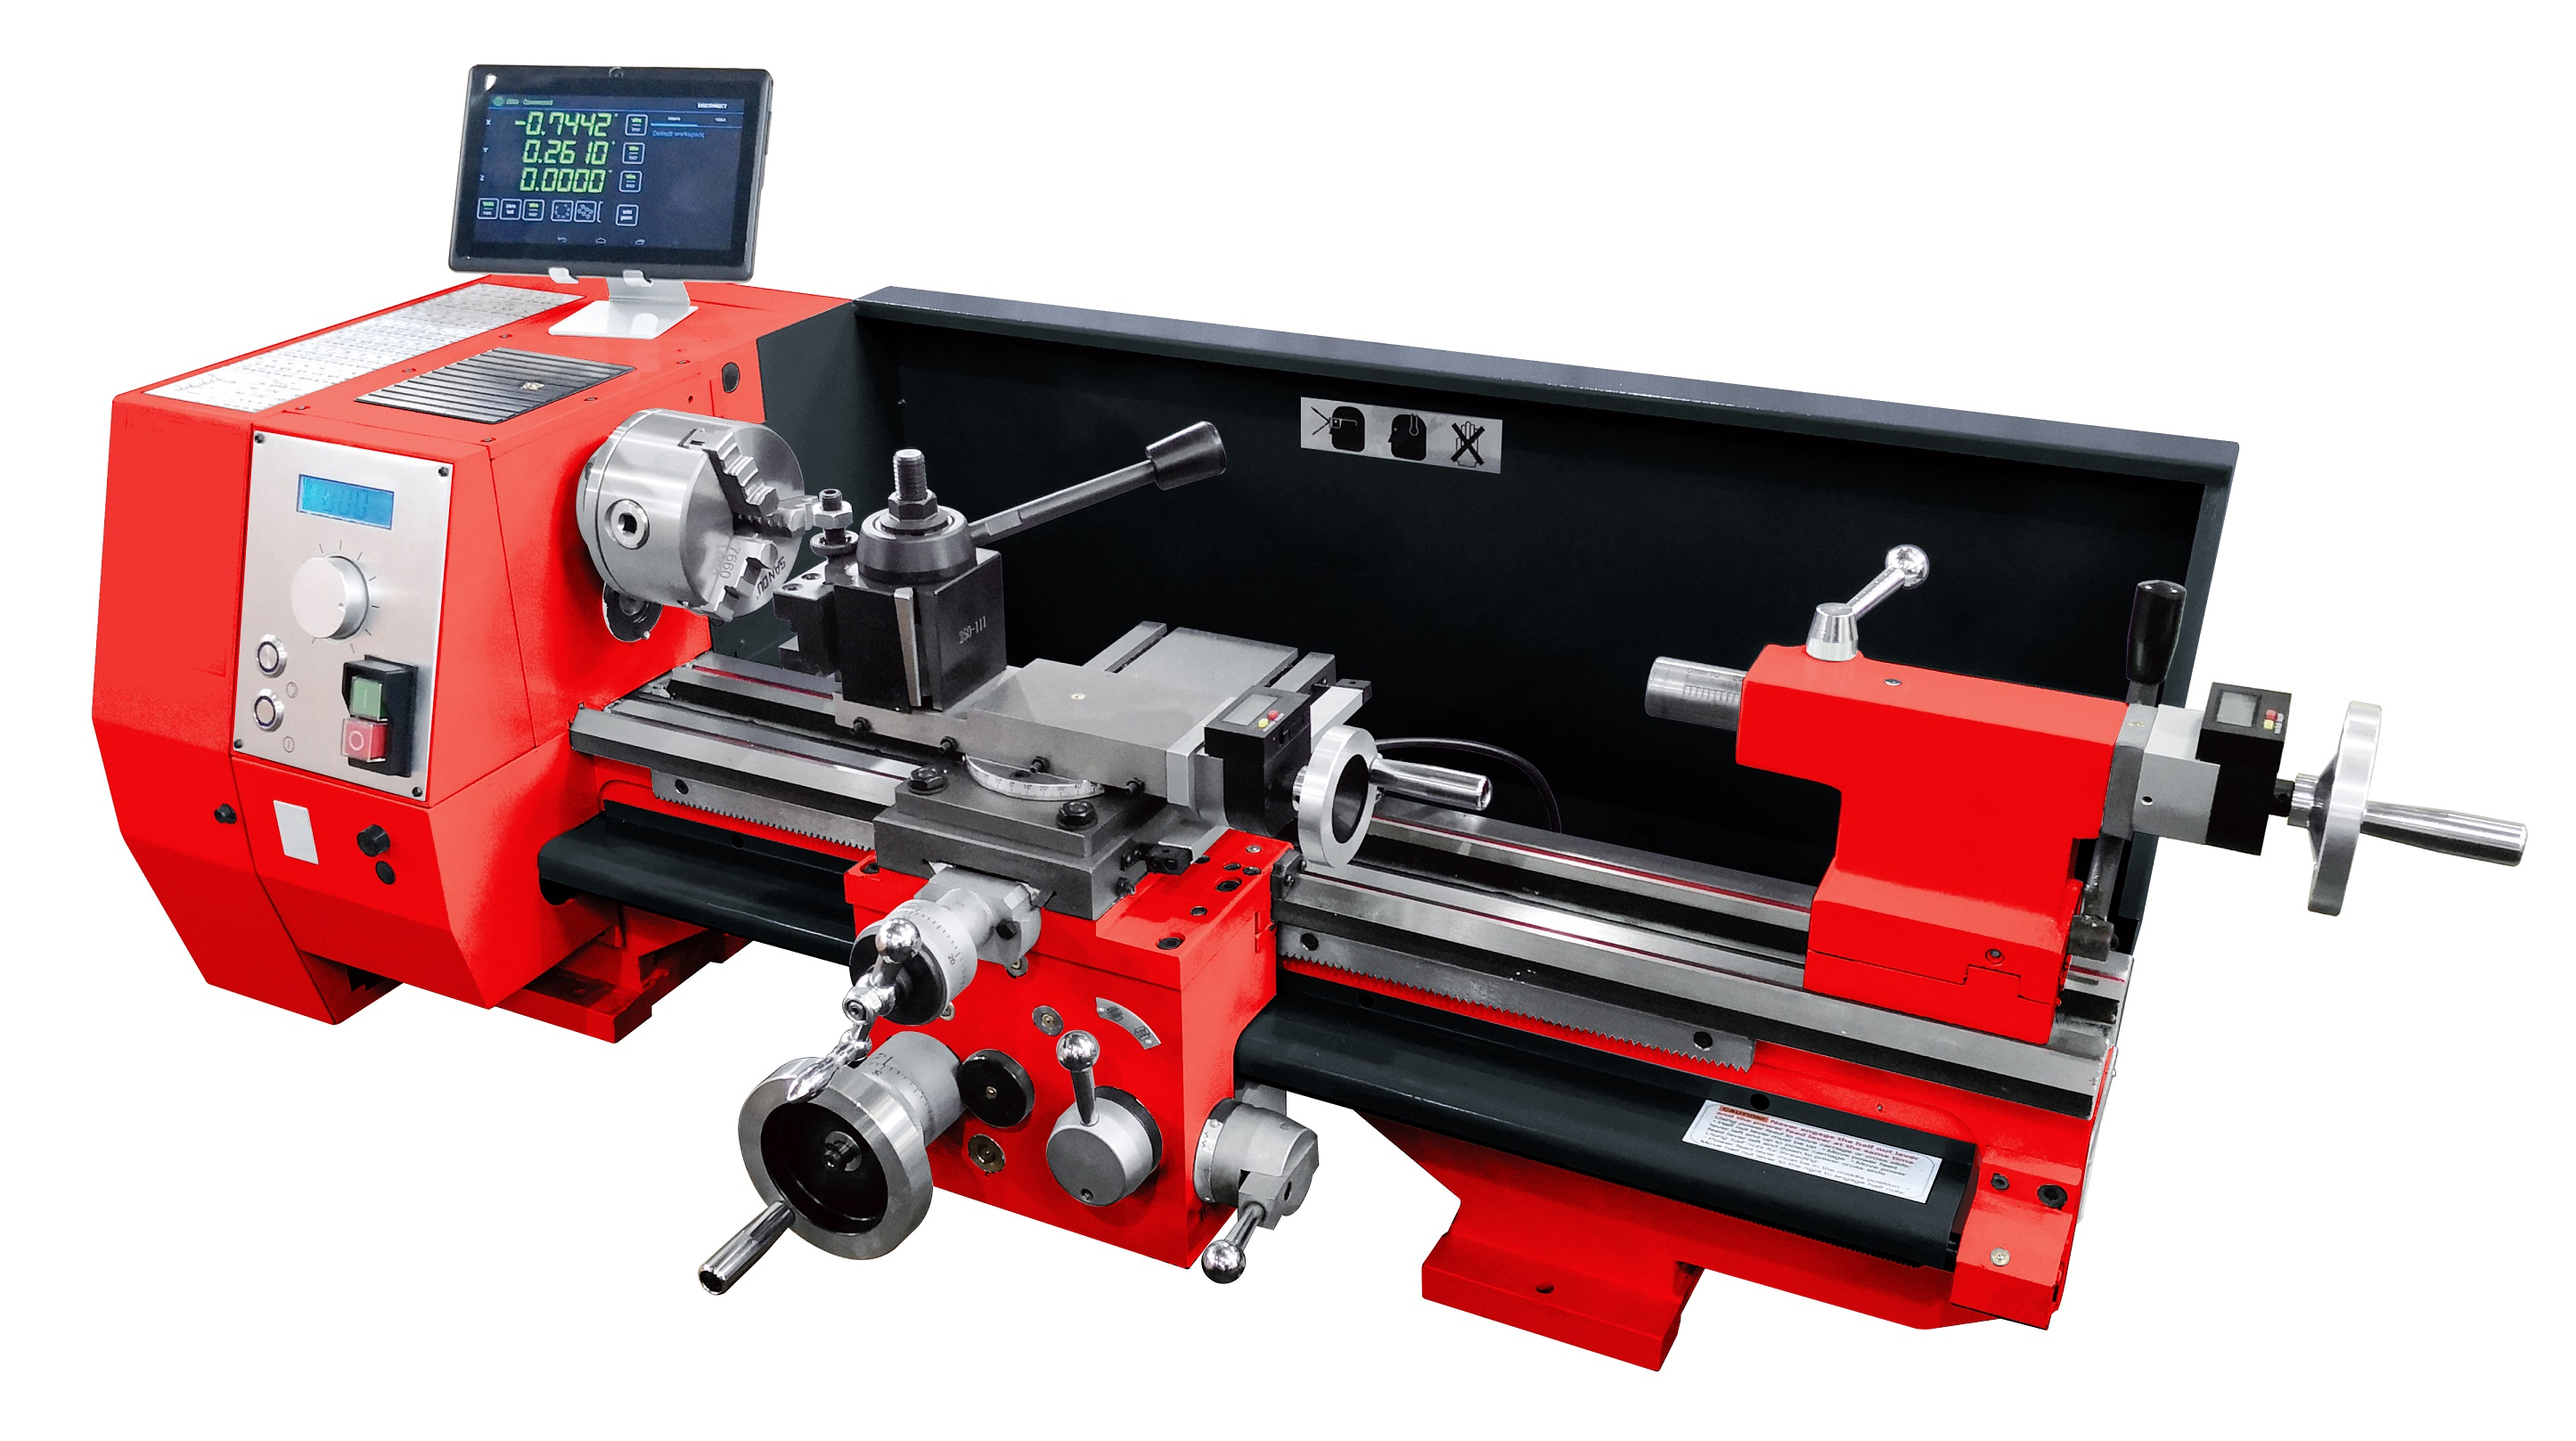 The Ultimate Version of SC4 Lathe